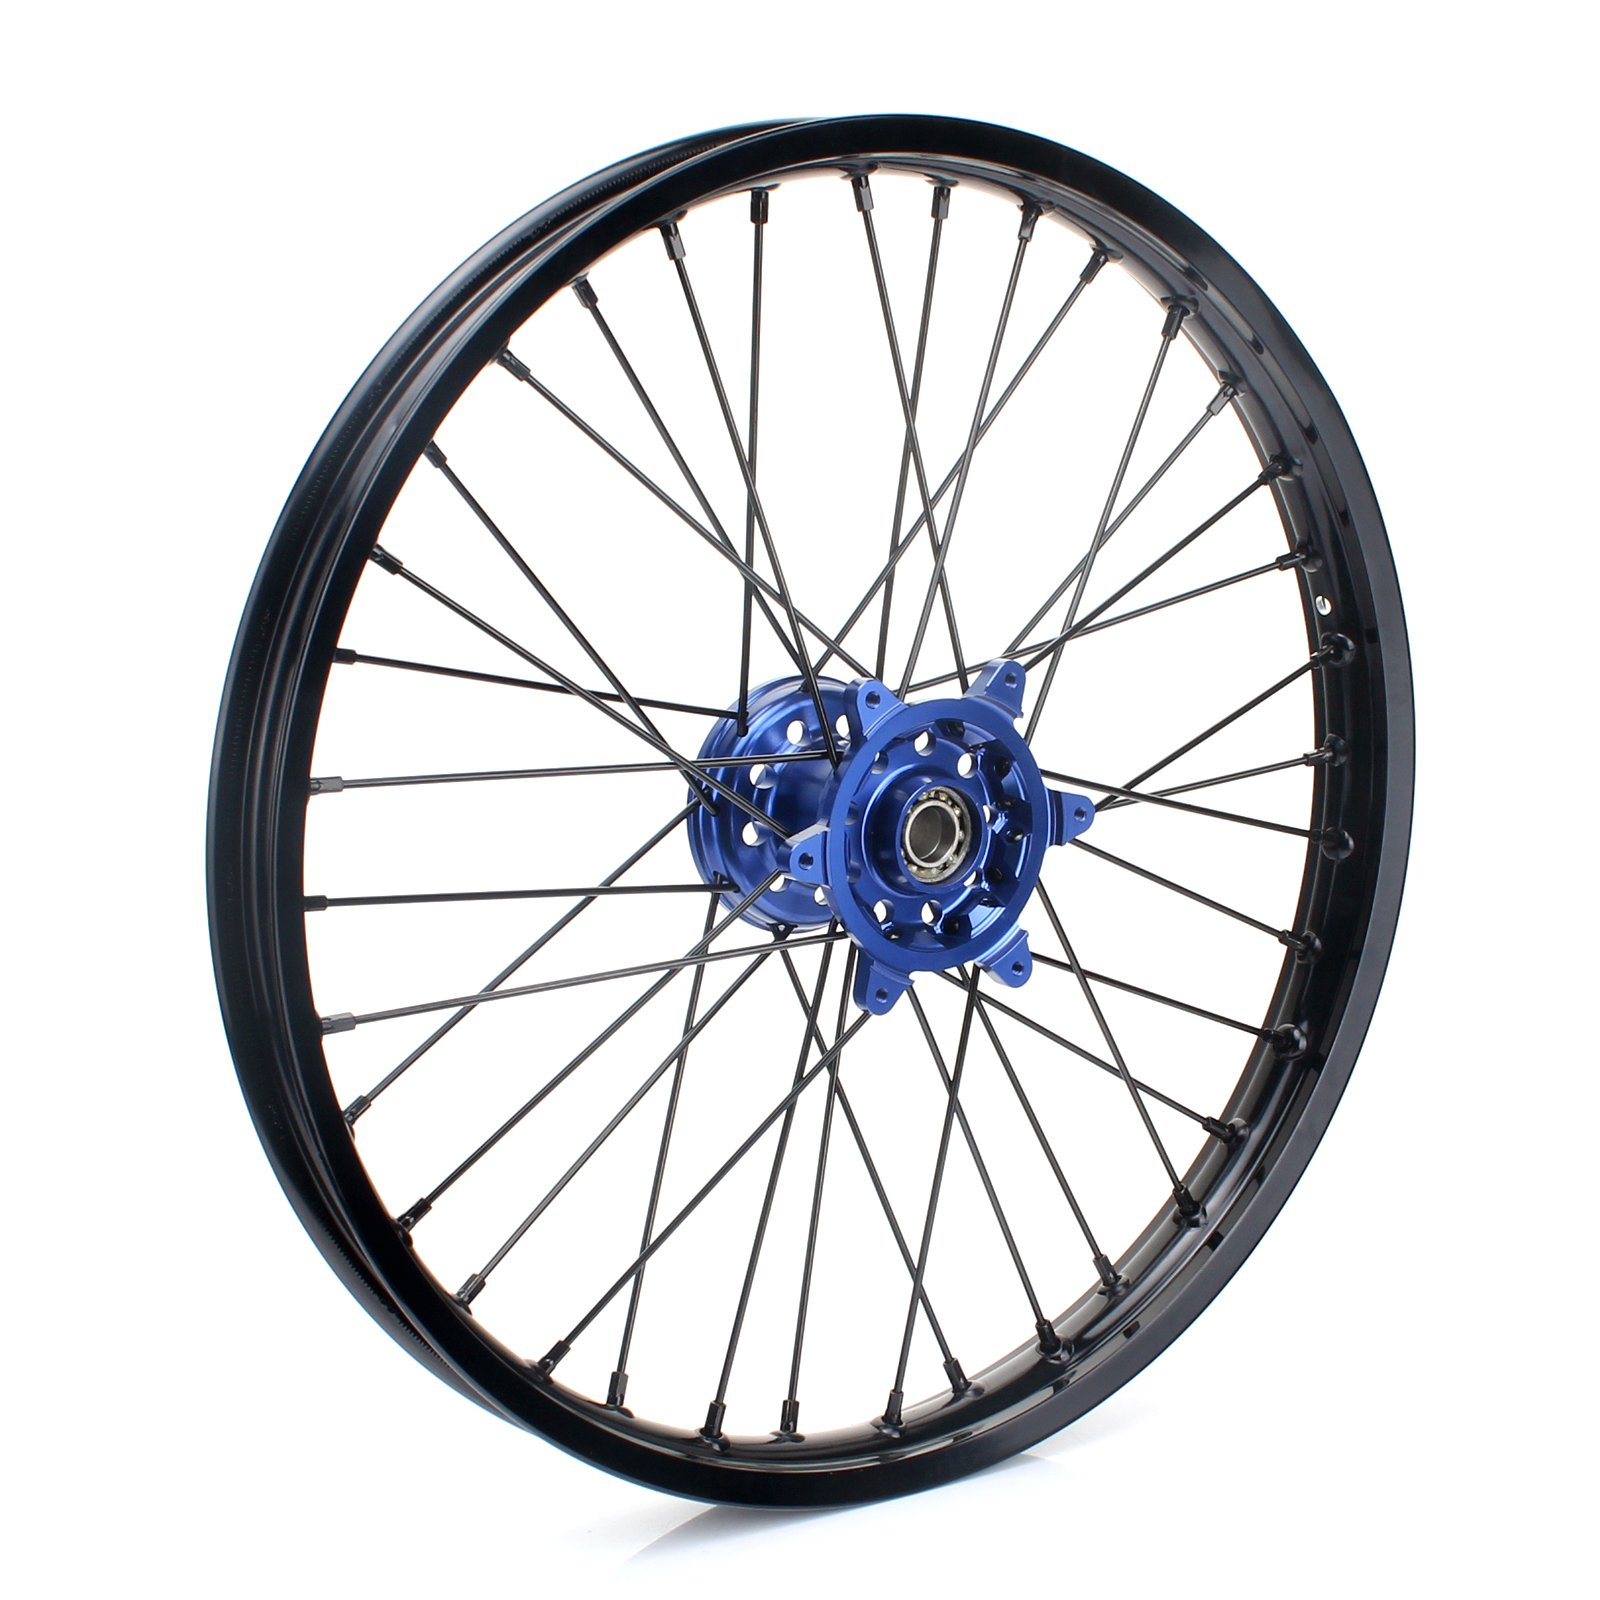 TARAZON 21'' MX Front Complete Wheel Set Rim Spokes Blue Hub for Yamaha YZ250F YZF250 YZ450F YZF450 2014 2015 2016 2017